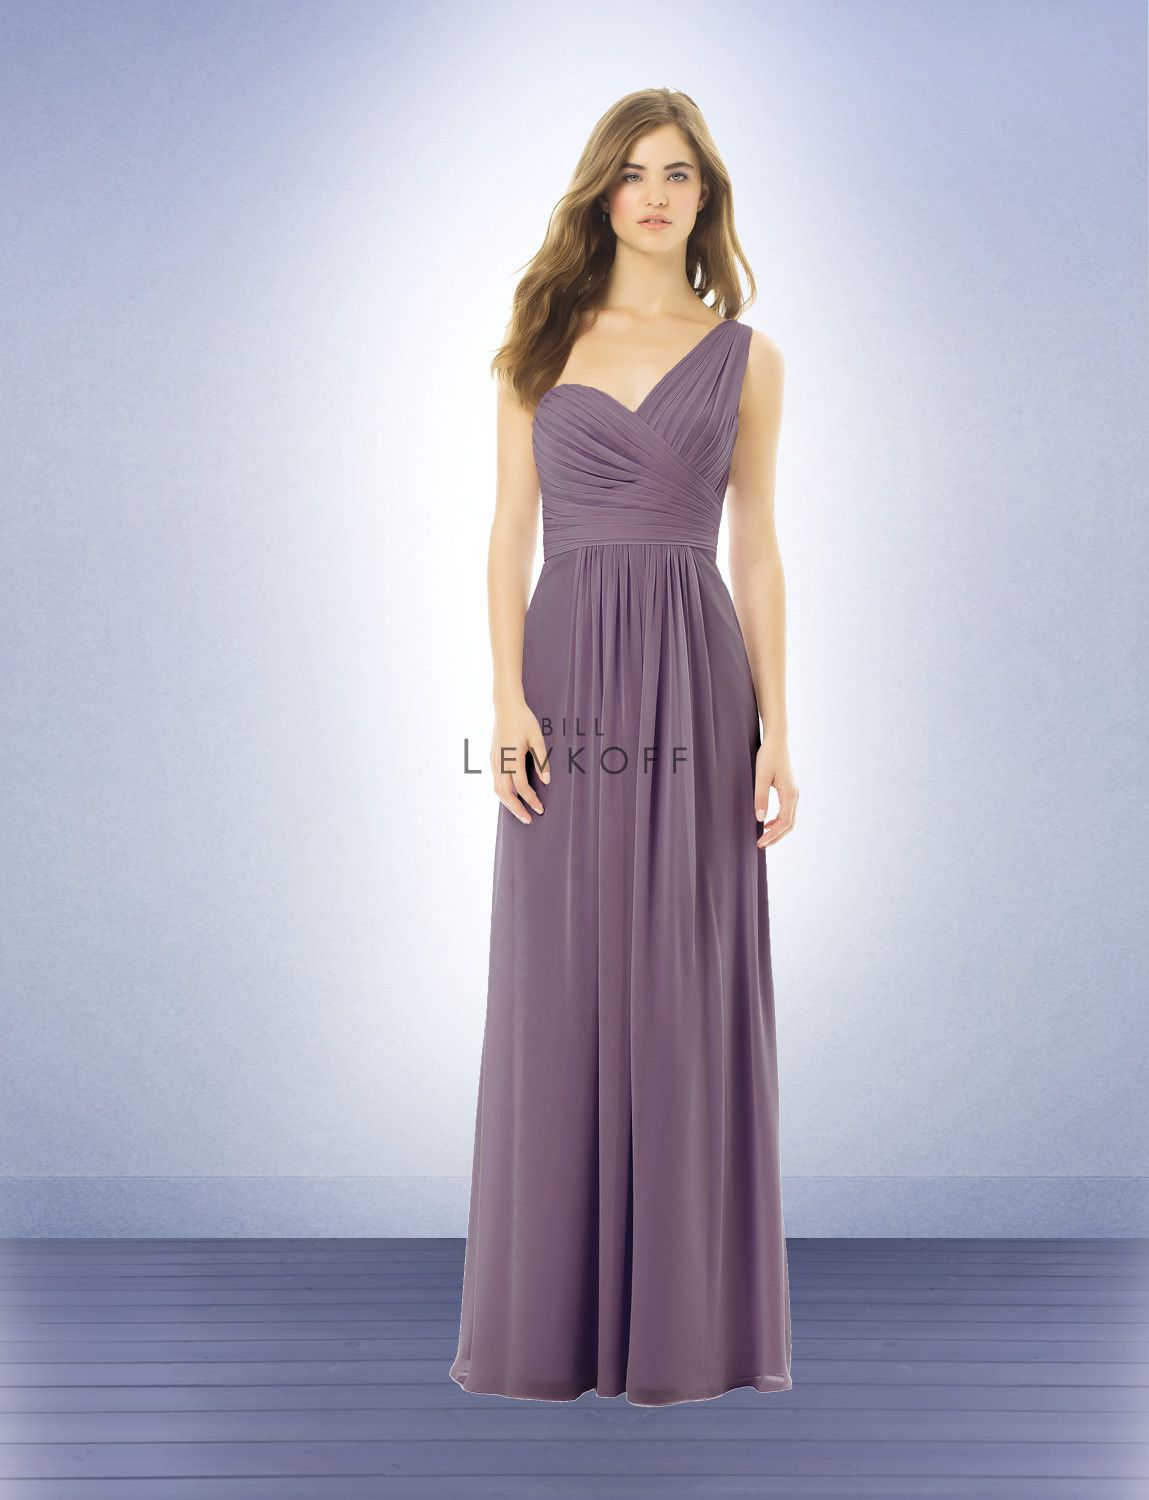 Bill Levkoff #492 - Chiffon gown with one wide shoulder strap ...